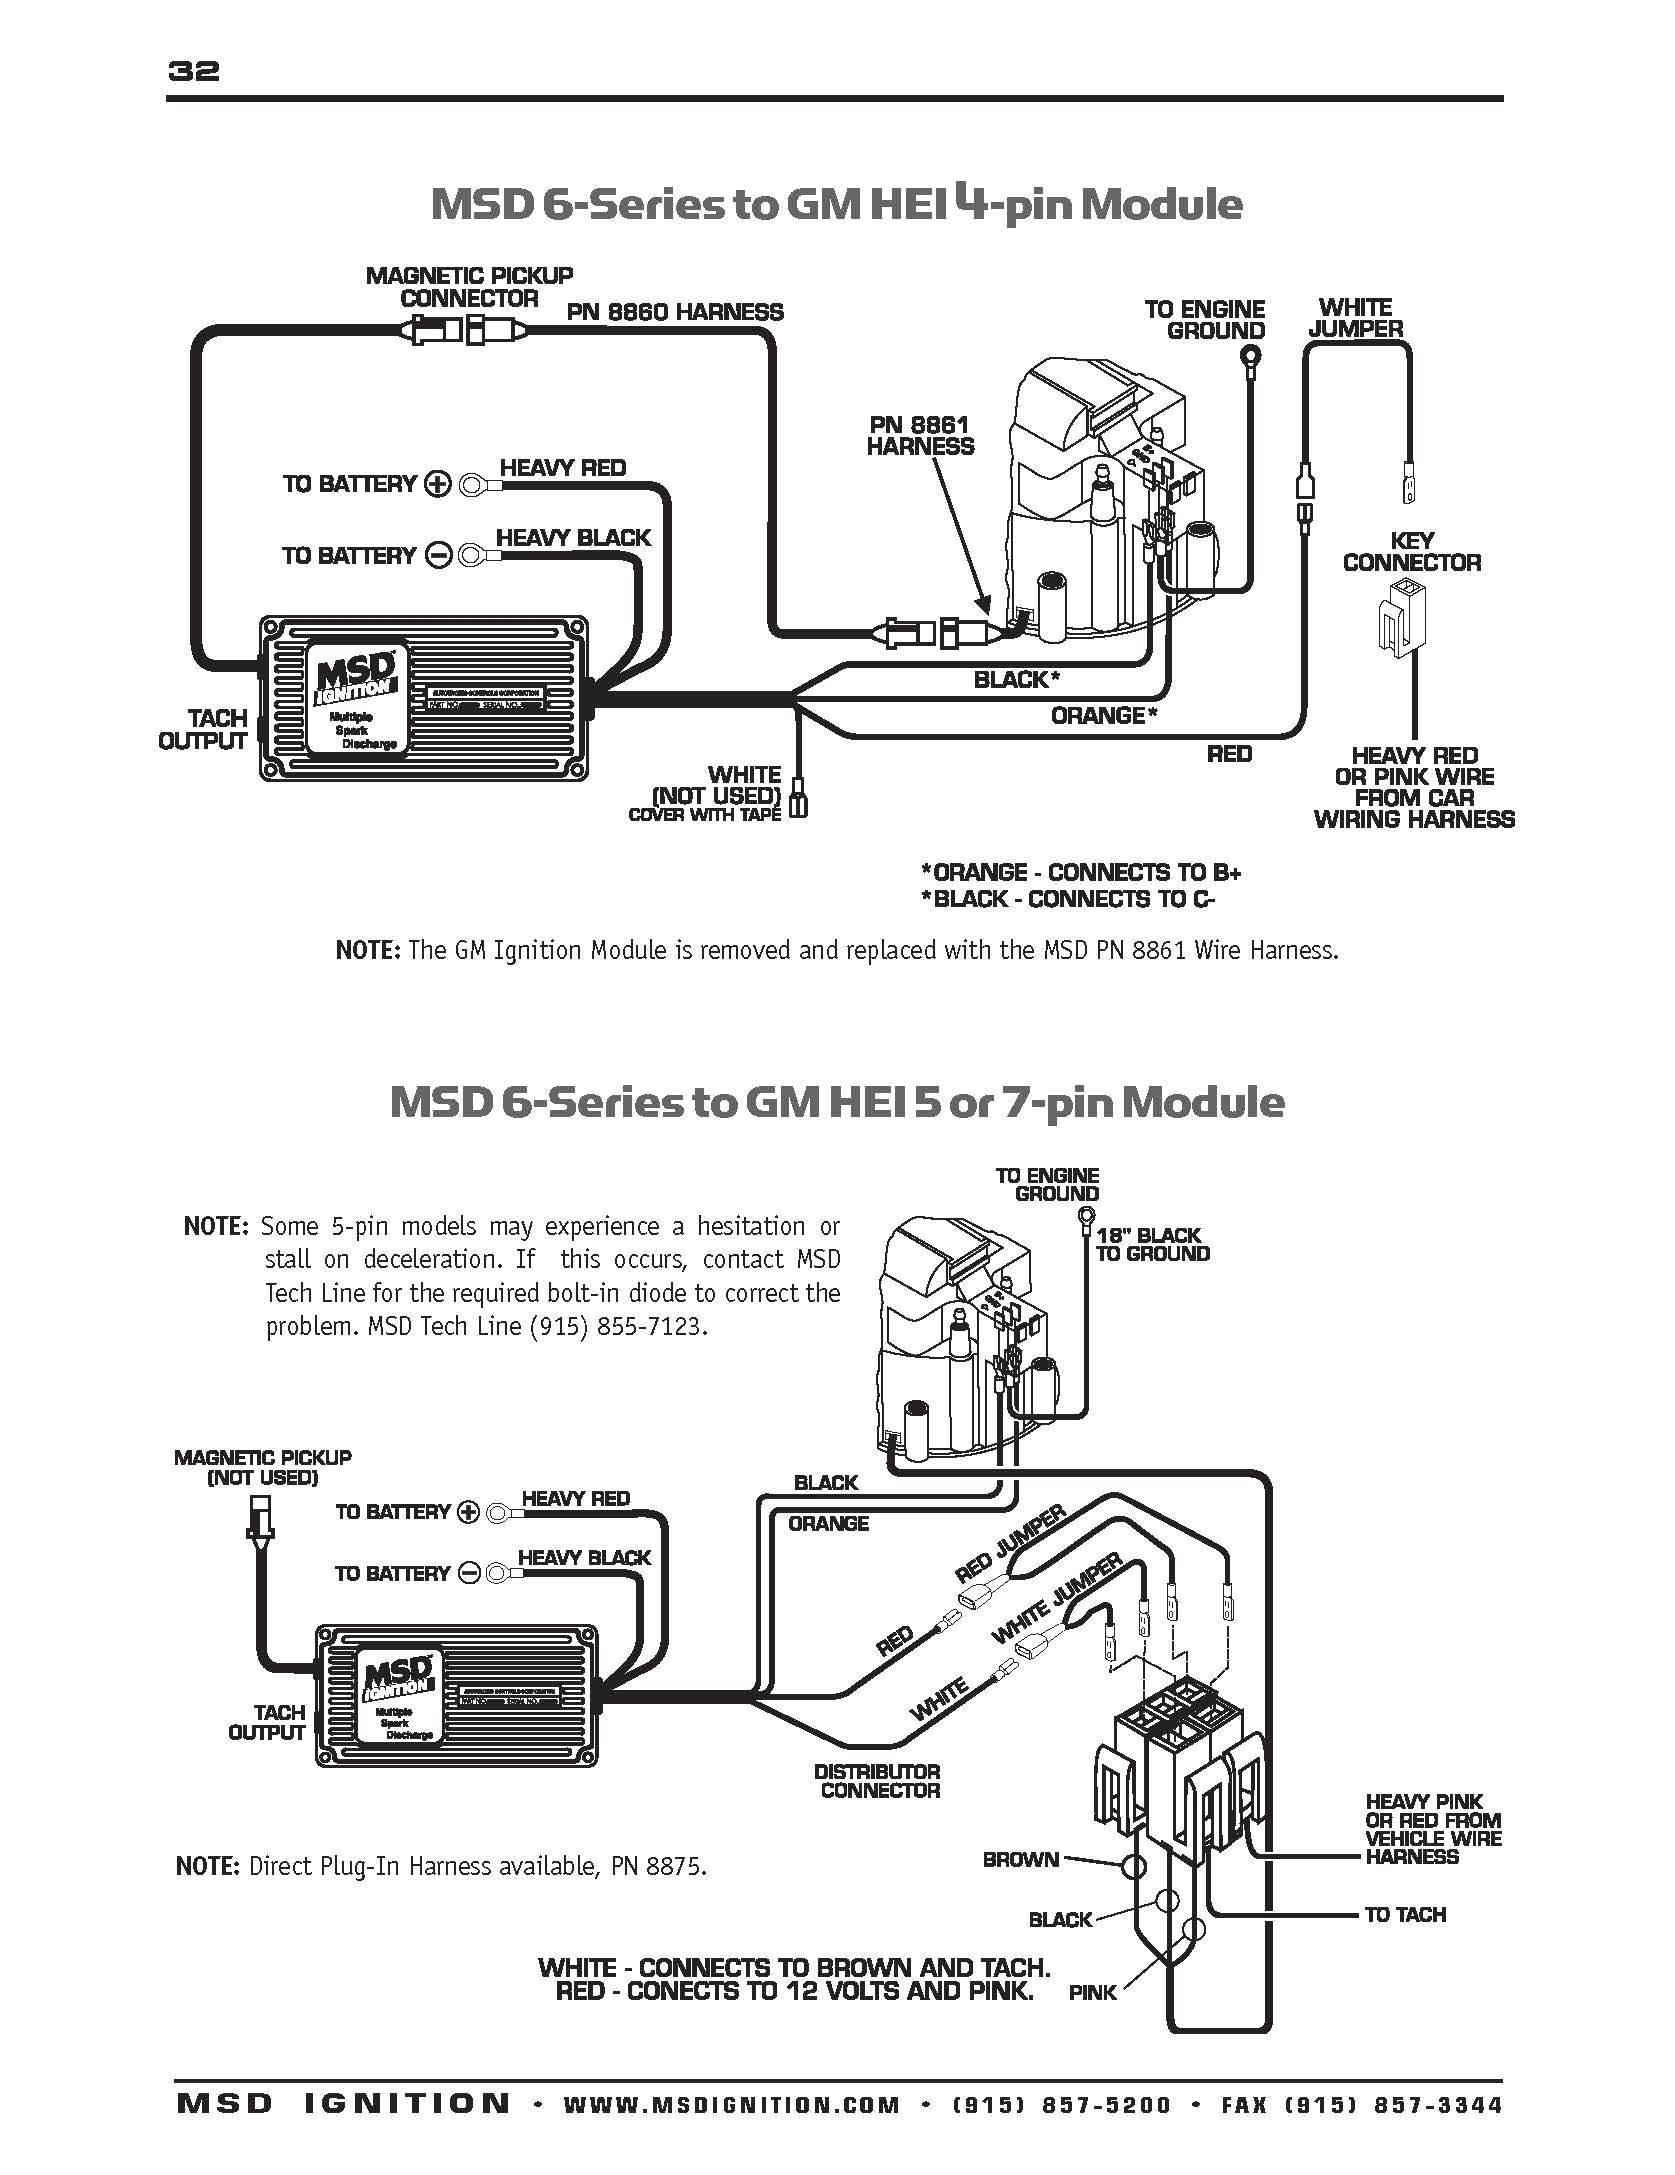 msd 6al wiring diagram 4440 wiring diagram wiring 6tn msd diagram ignition pn6402